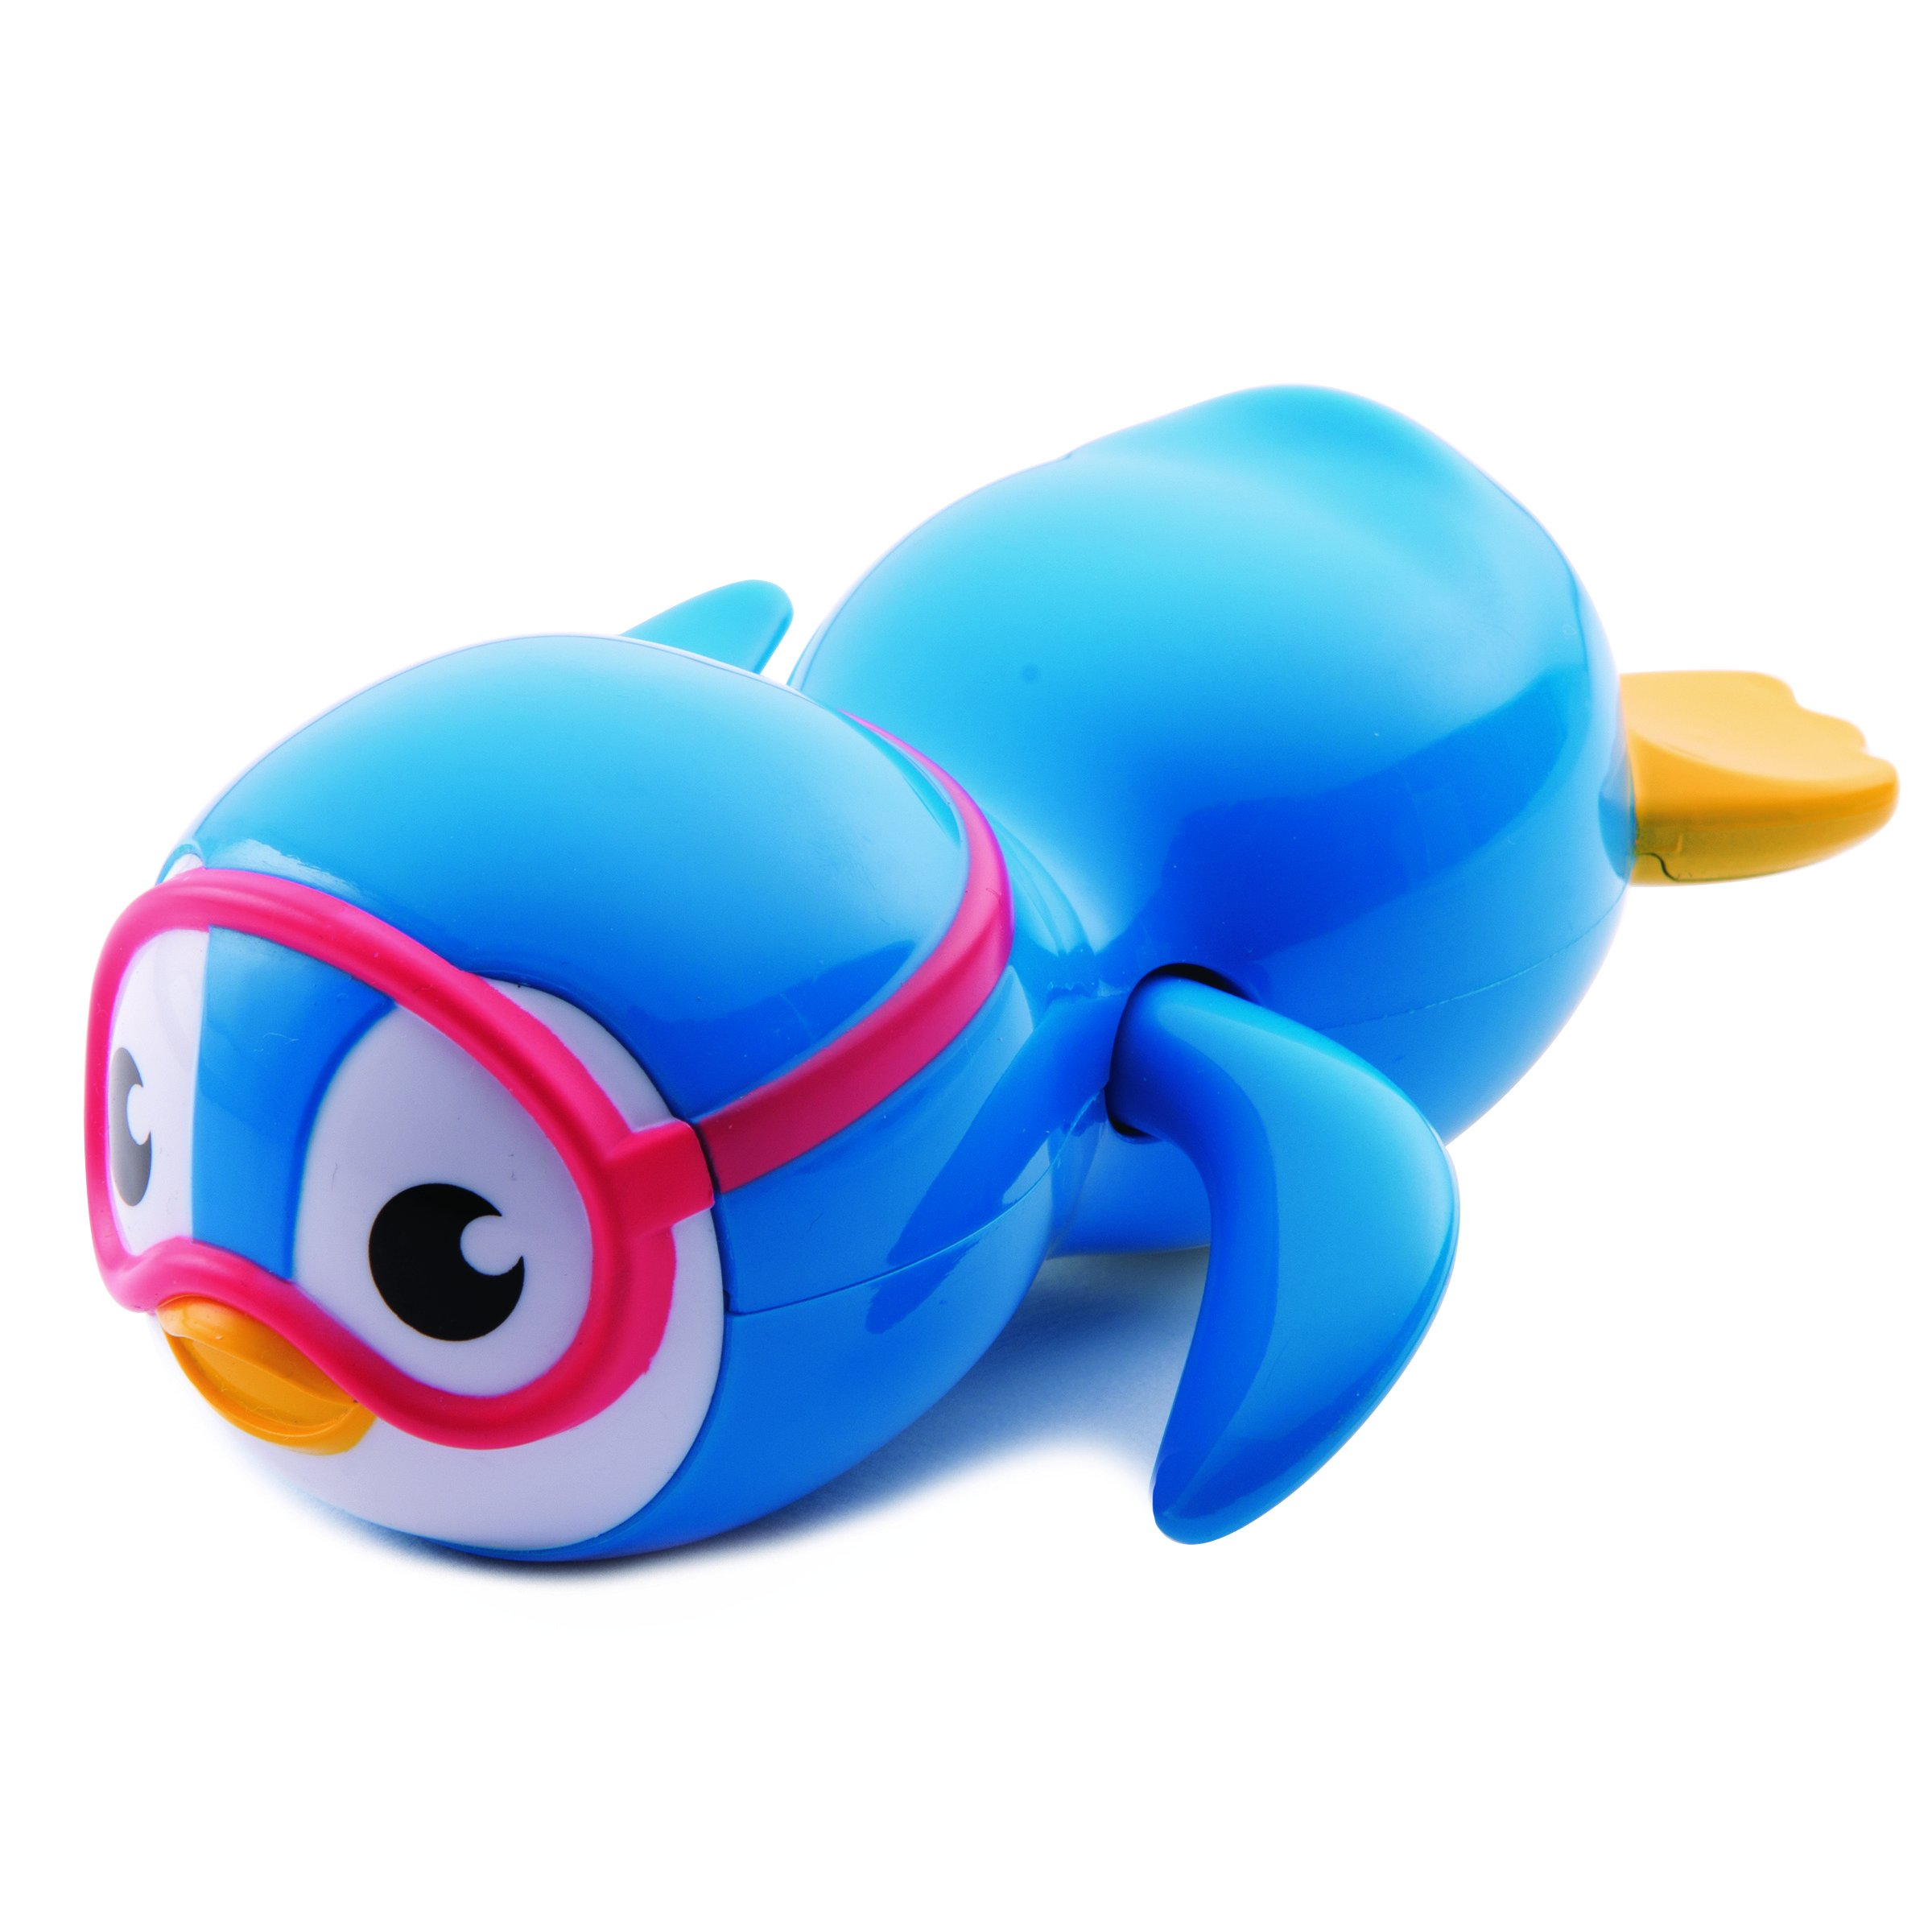 Munchkin Swimming Scuba Buddy Bath Toy Baby Kids Bath Activity Fun